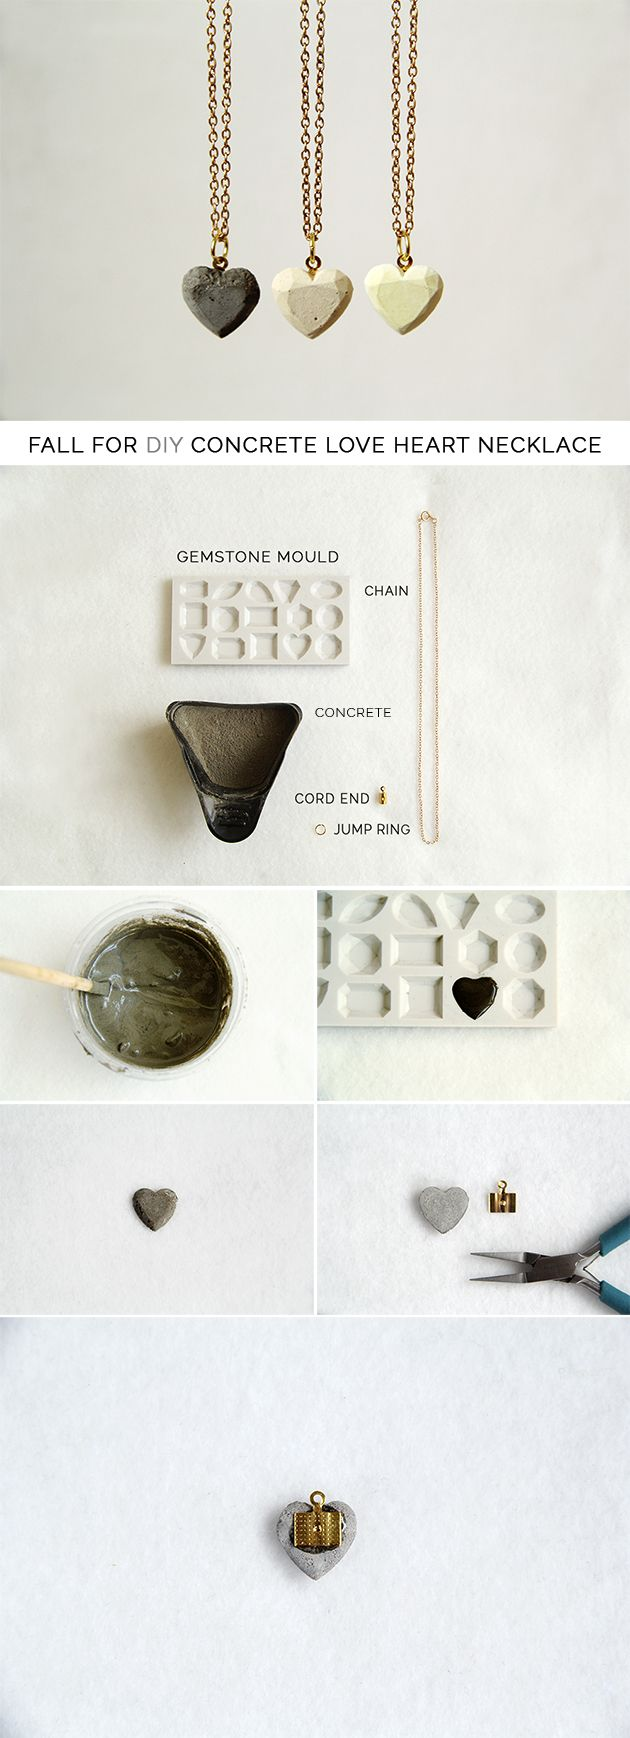 Concrete heart necklace DIY.